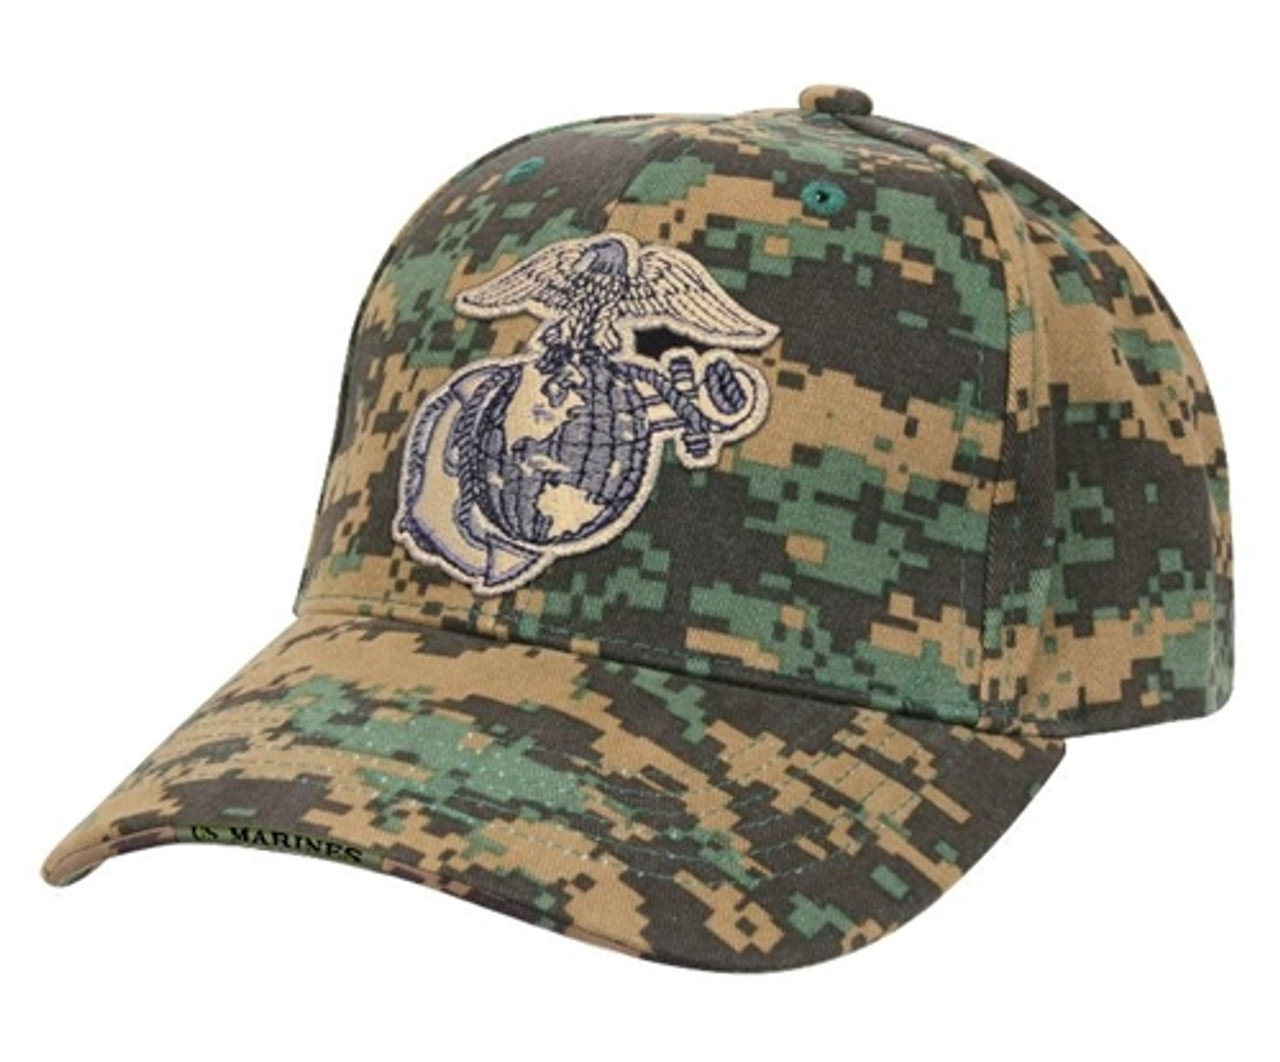 USMC Globe & Anchor Low Profile Insignia Cap from Hessen Tactical